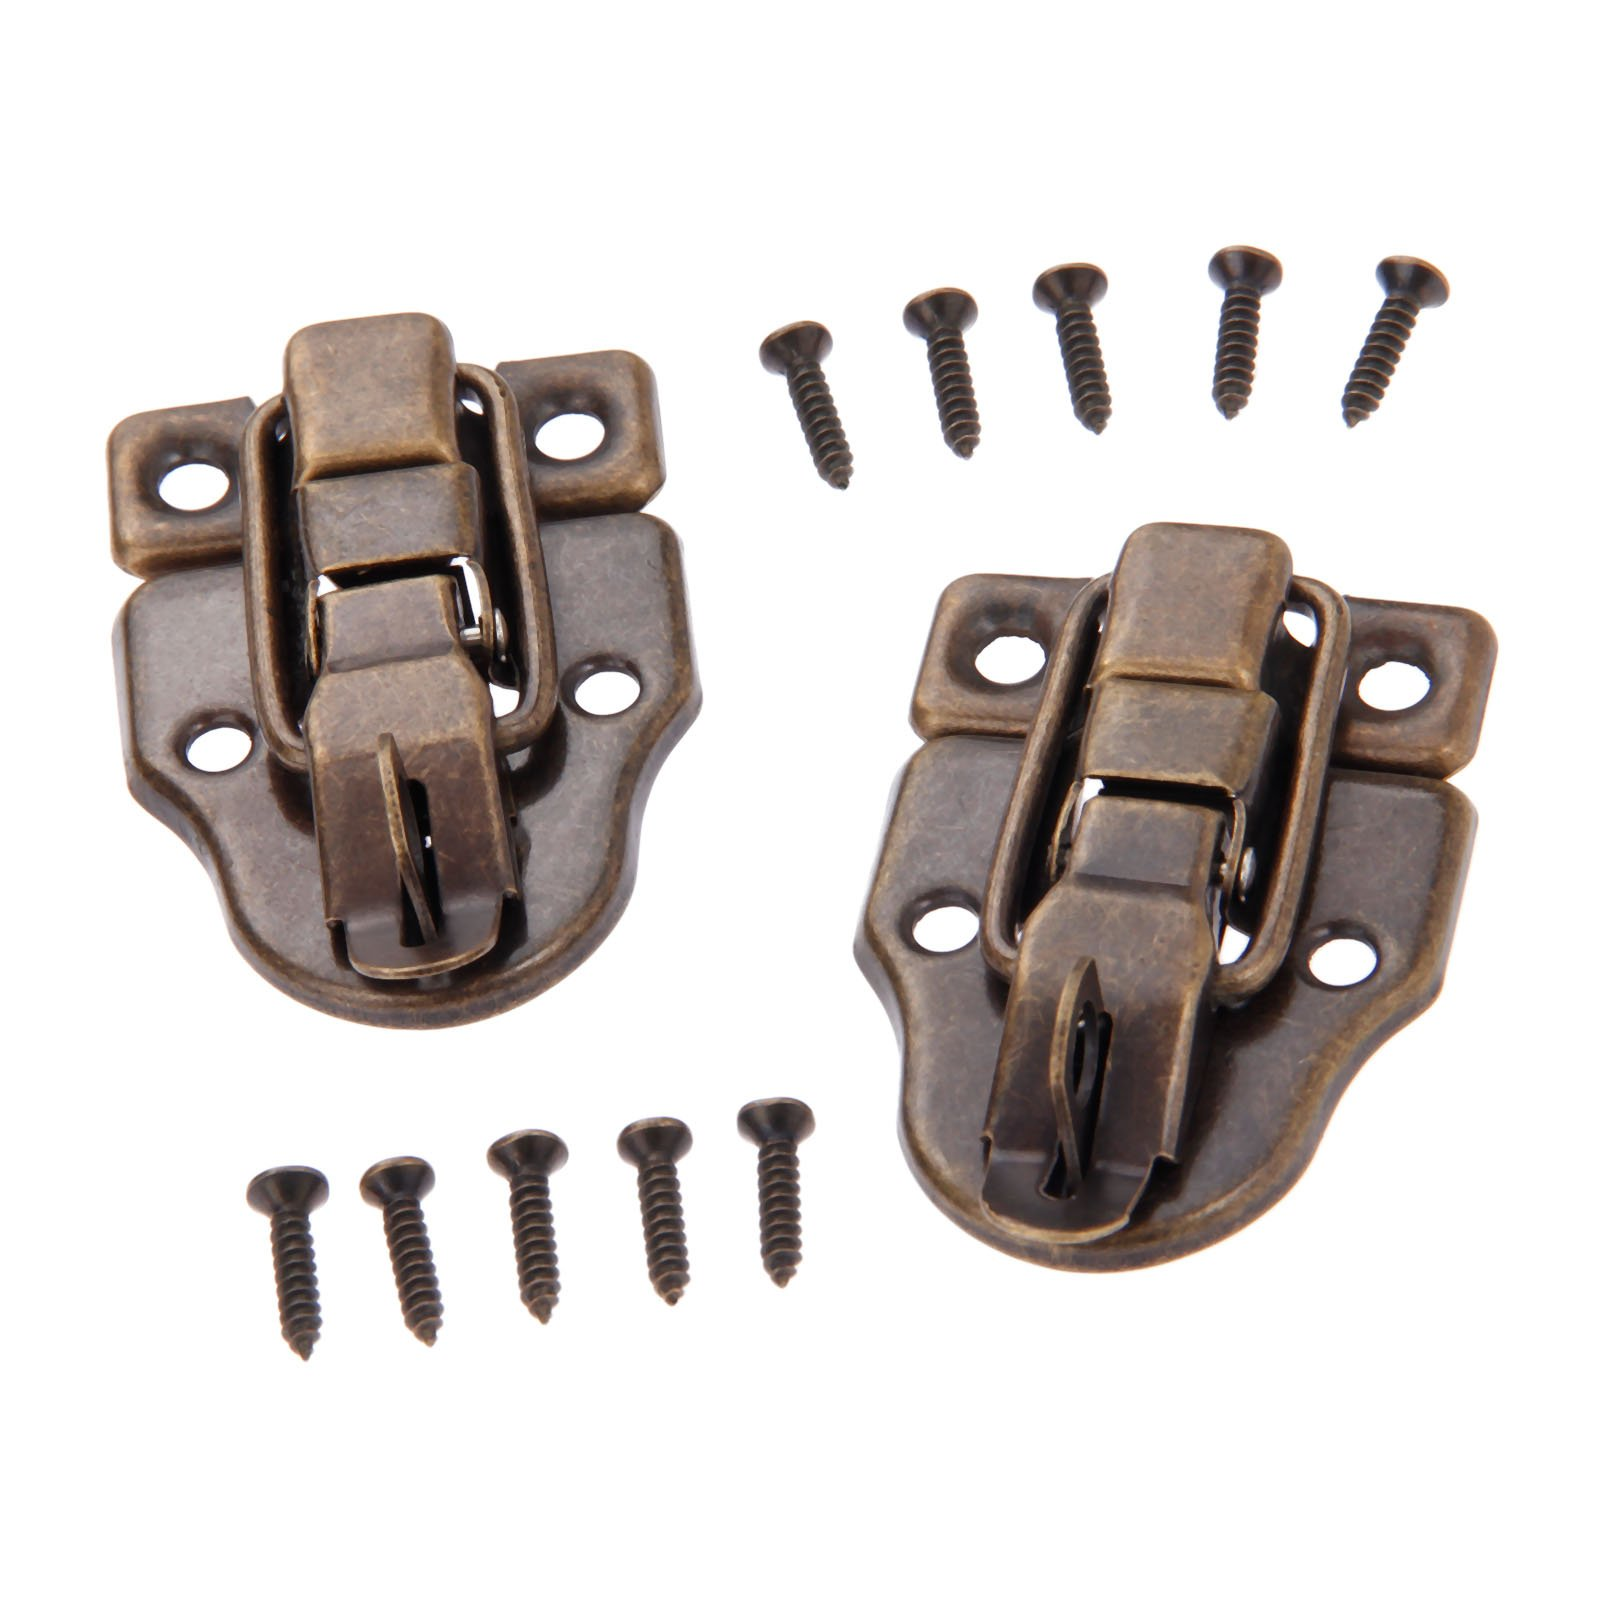 Dophee 10Pcs 2.32''x1.57'' Antique Bronze Retro Style Iron Toggle Fit Case Box Chest Trunk Latch Hasps by dophee